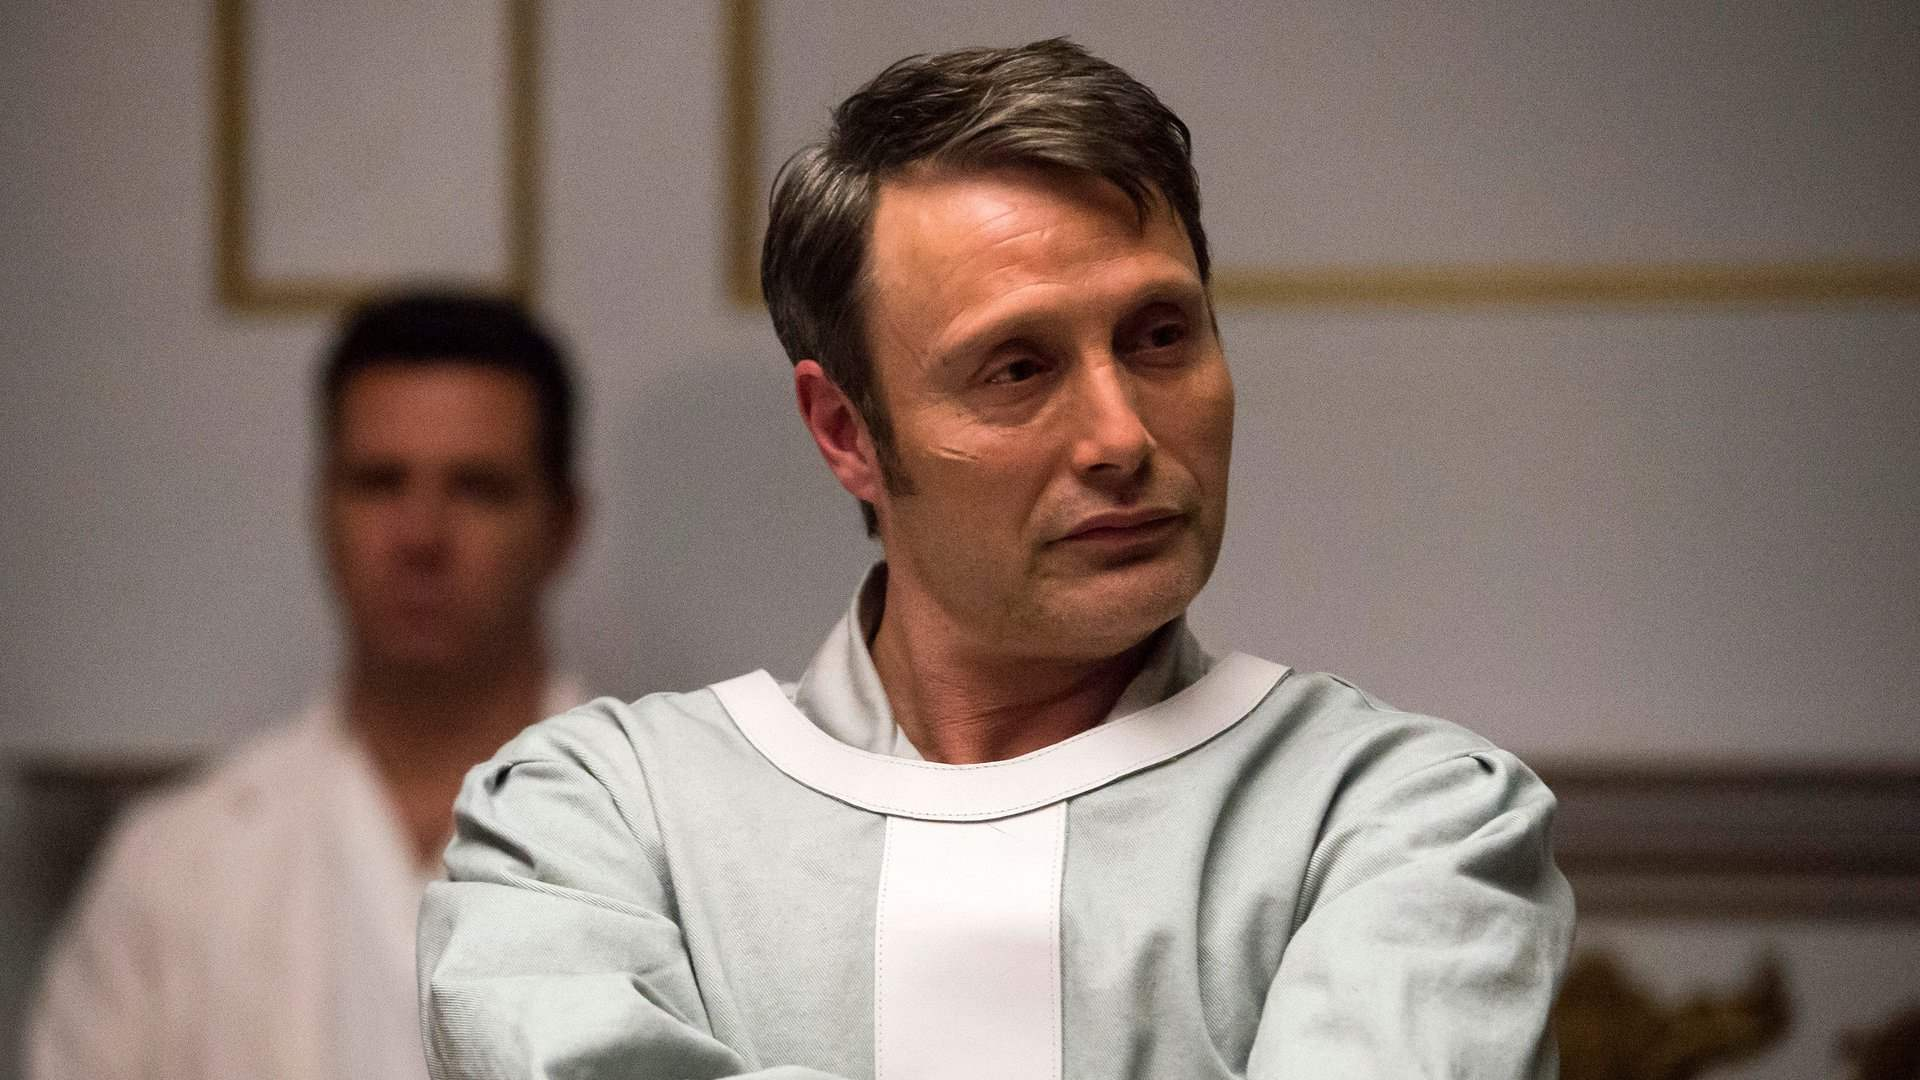 Hannibal Lecter is the amused audience as he watches Jack, Alana, and Will's plan fail in episode 12 of Hannibal's third season.